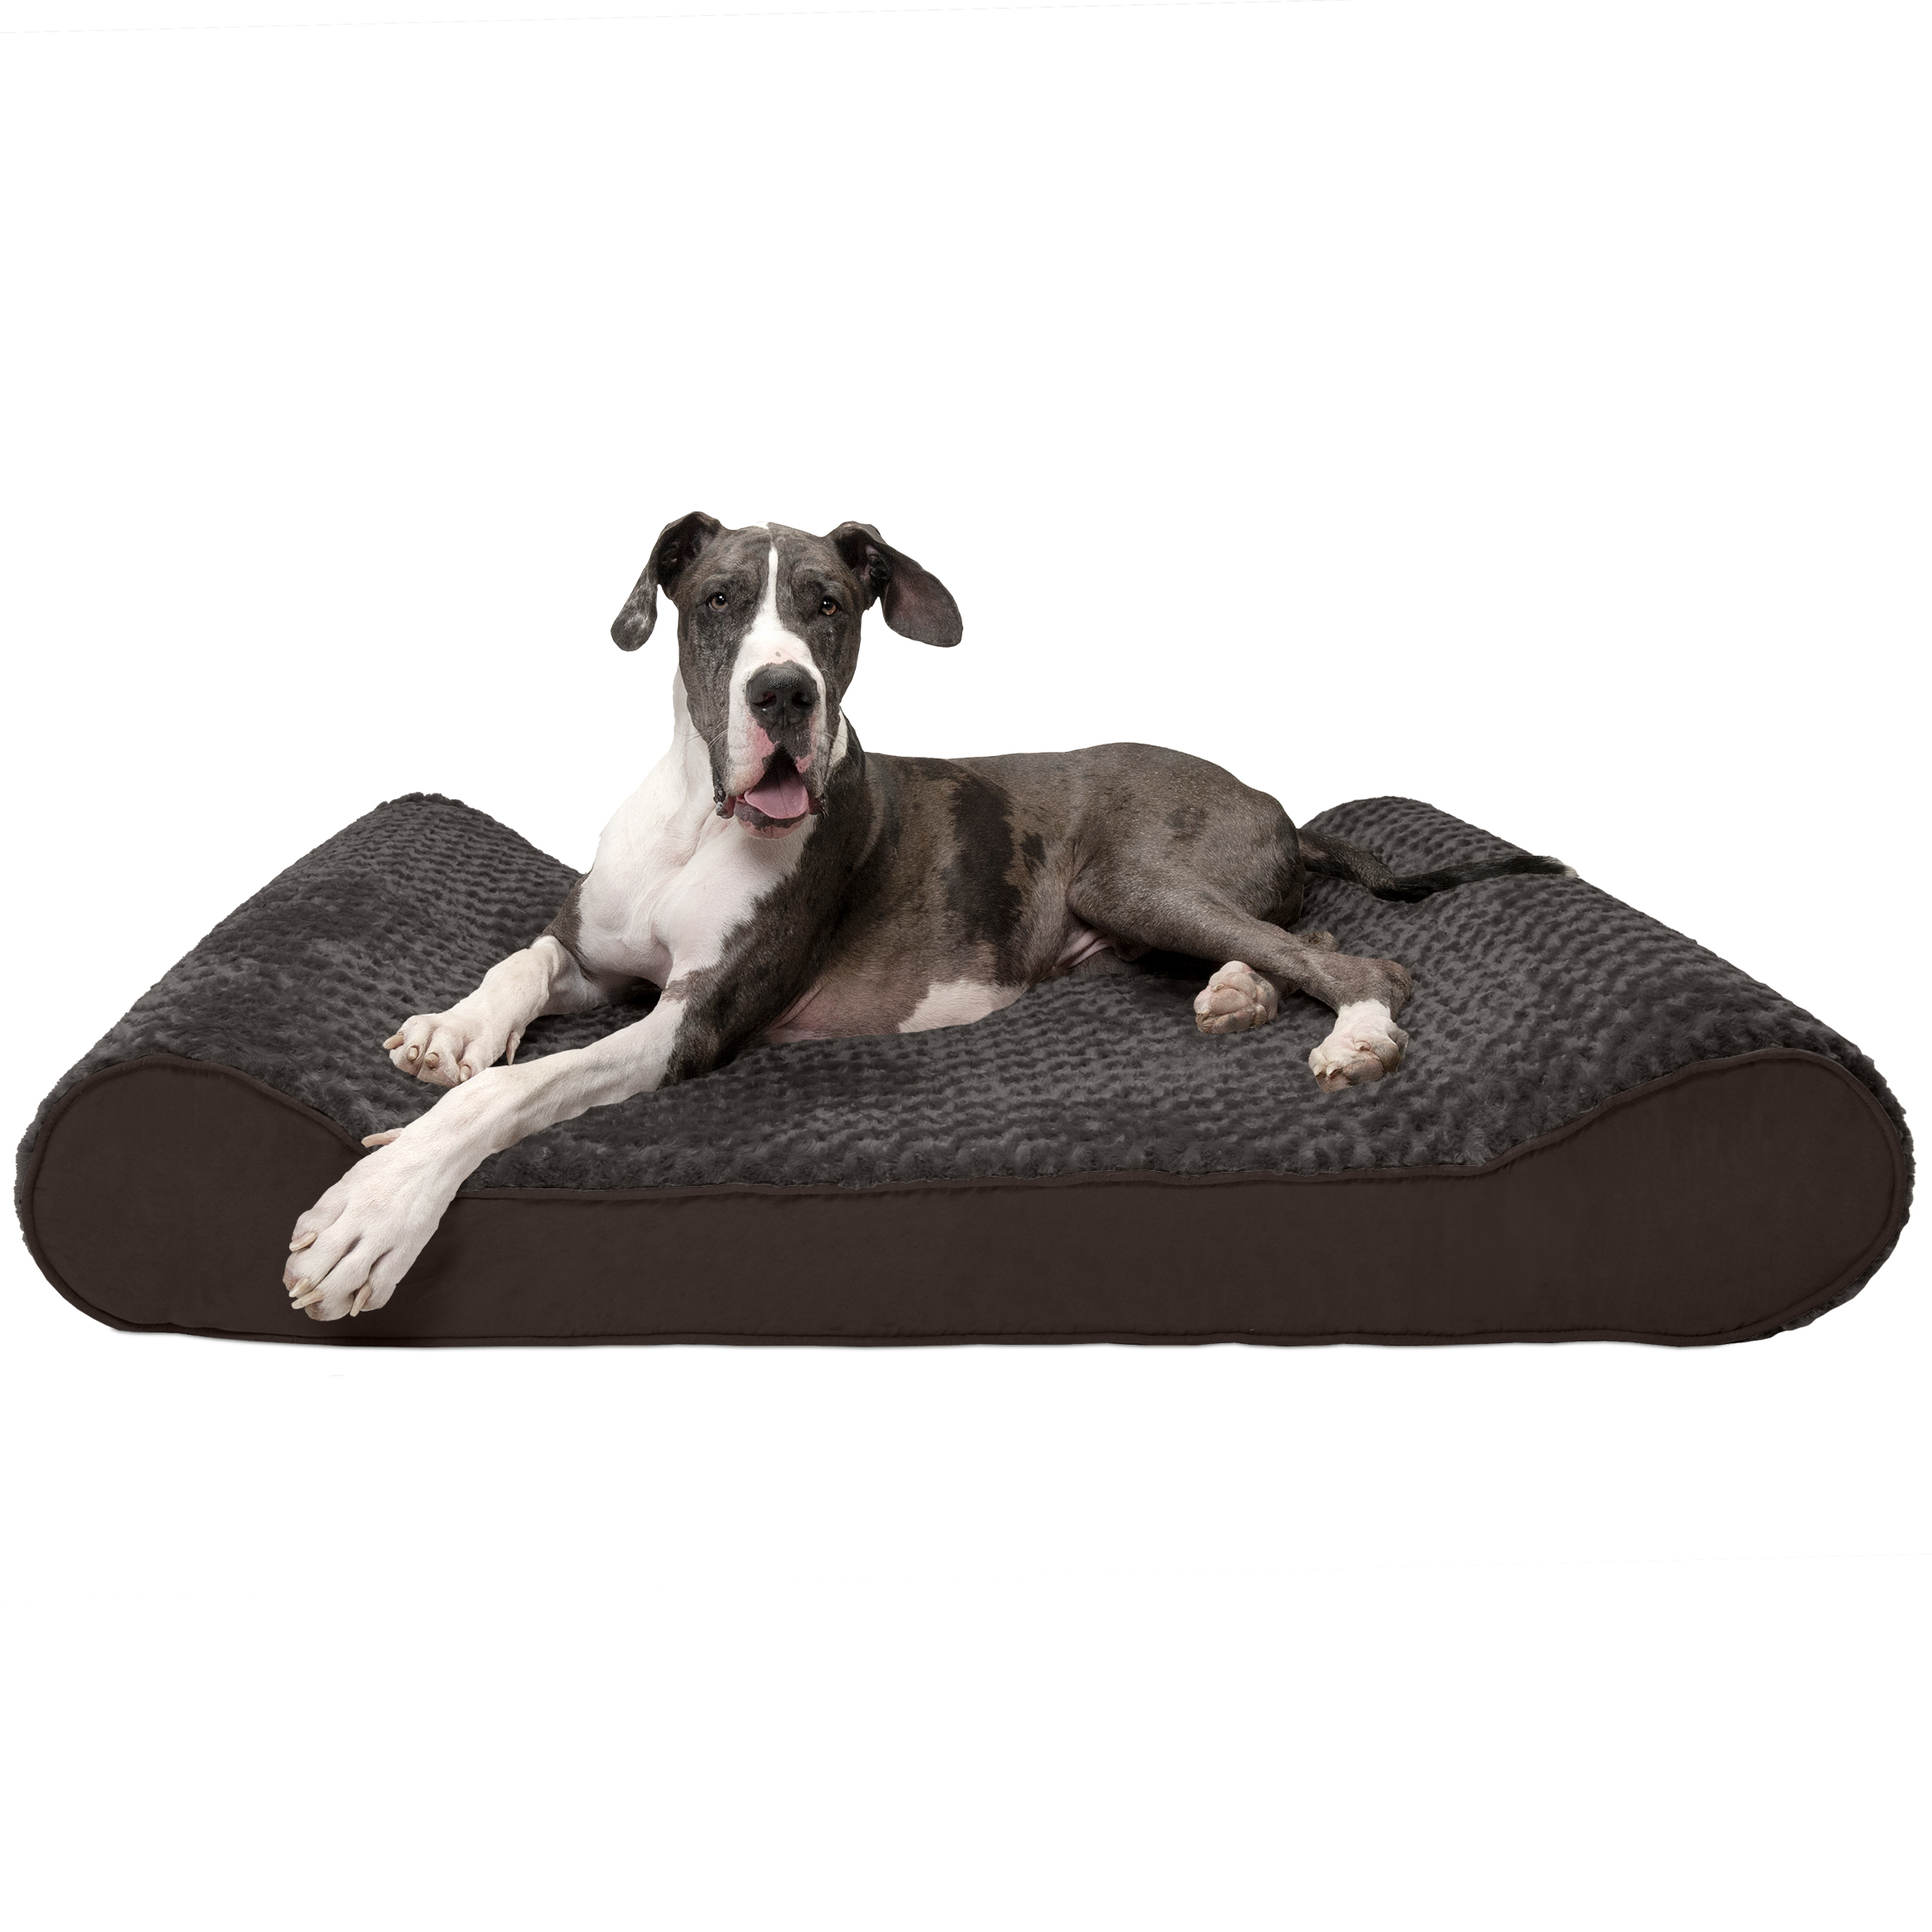 FurHaven Pet Dog Bed | Orthopedic Ultra Plush Luxe Lounger Pet Bed for Dogs & Cats, Chocolate, Giant